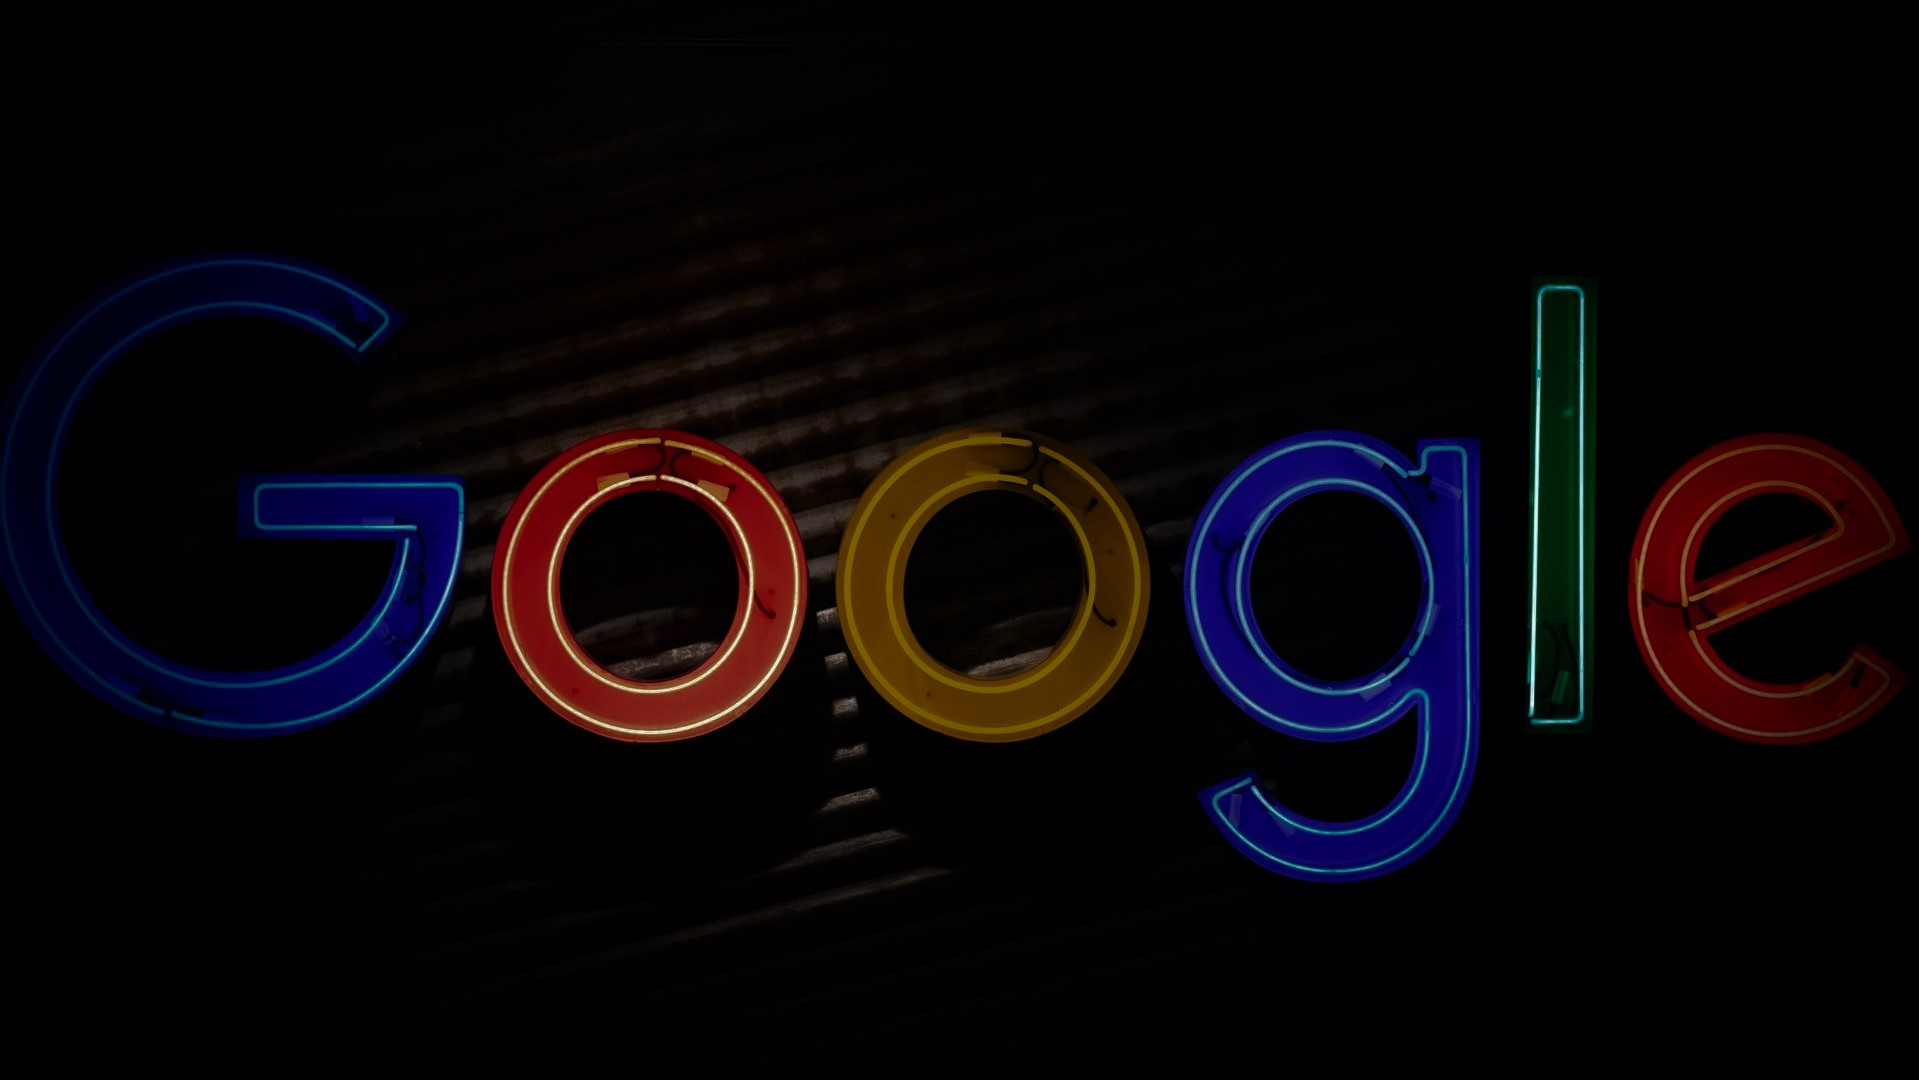 Search Engine & SEO News: Google, Schema.org & The Structured Data Testing Tool